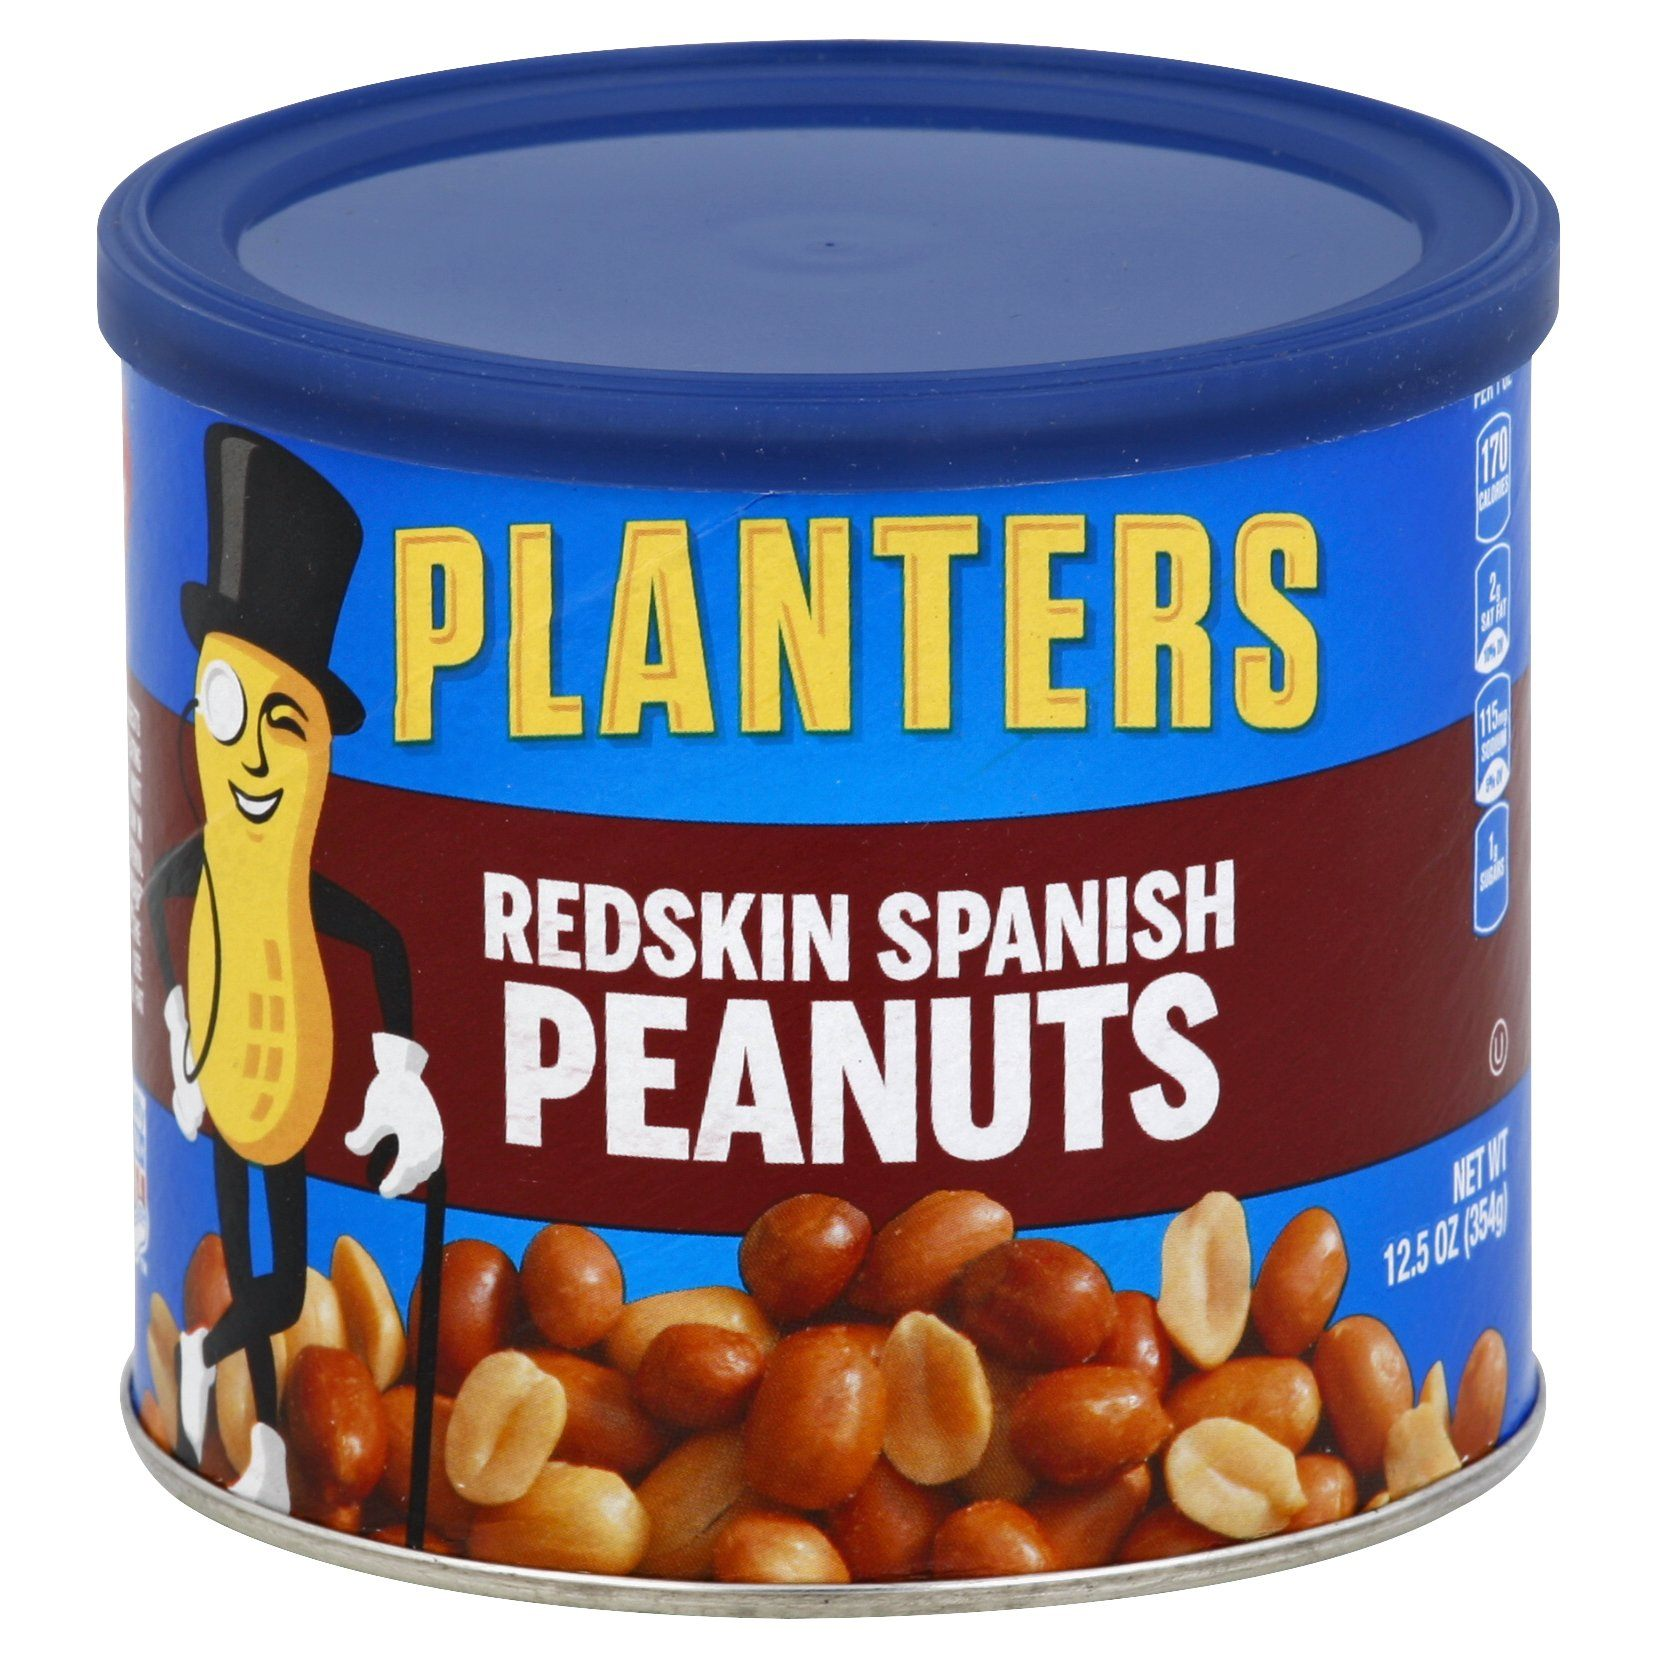 Planters Peanuts Planters Redskin Spanish 12.5 Ounce